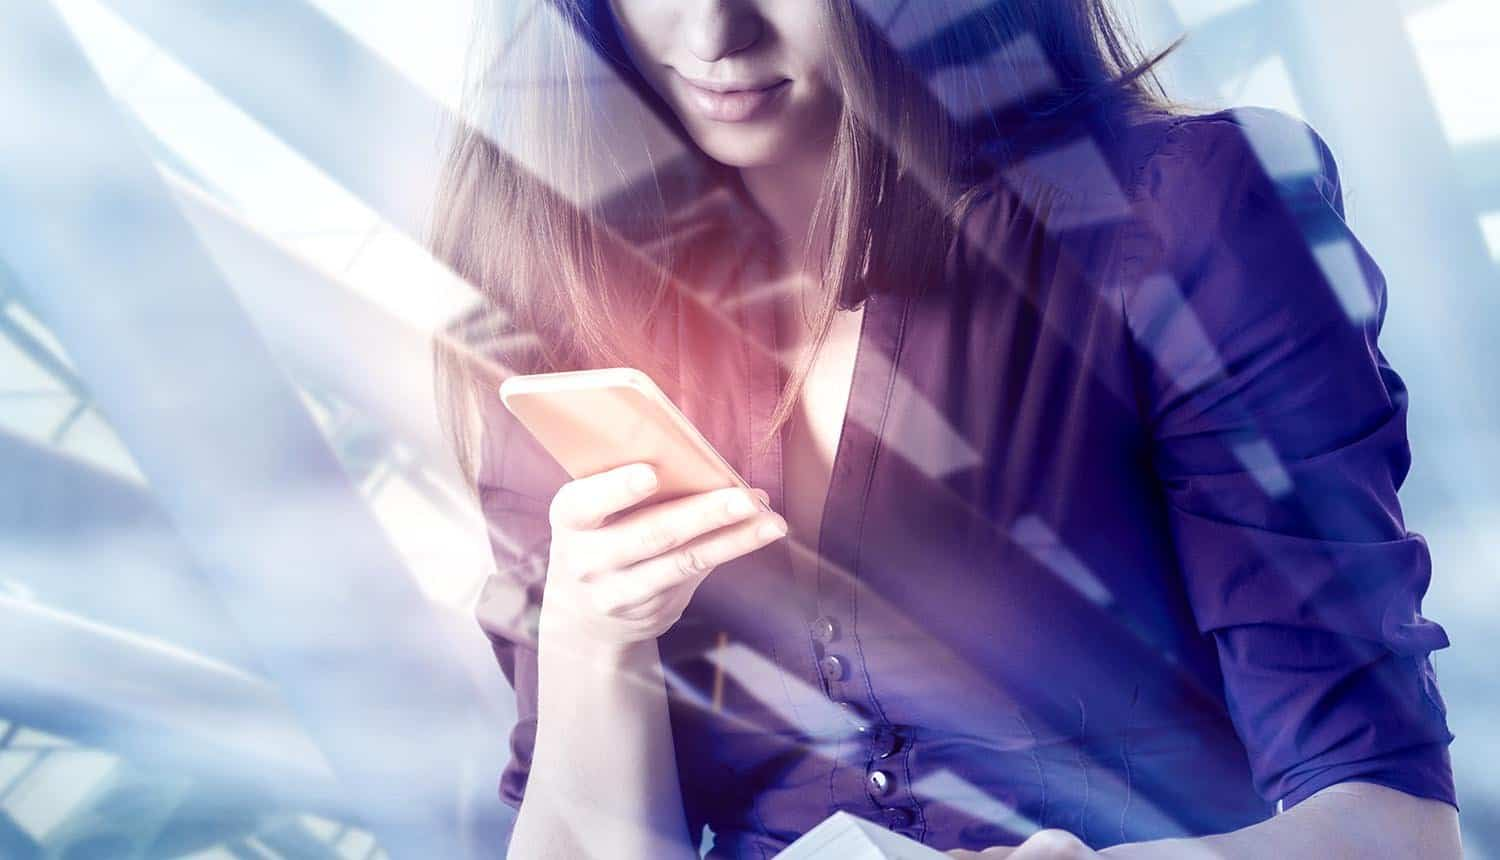 Woman using smartphone with digital business interface showing cookies for personalization